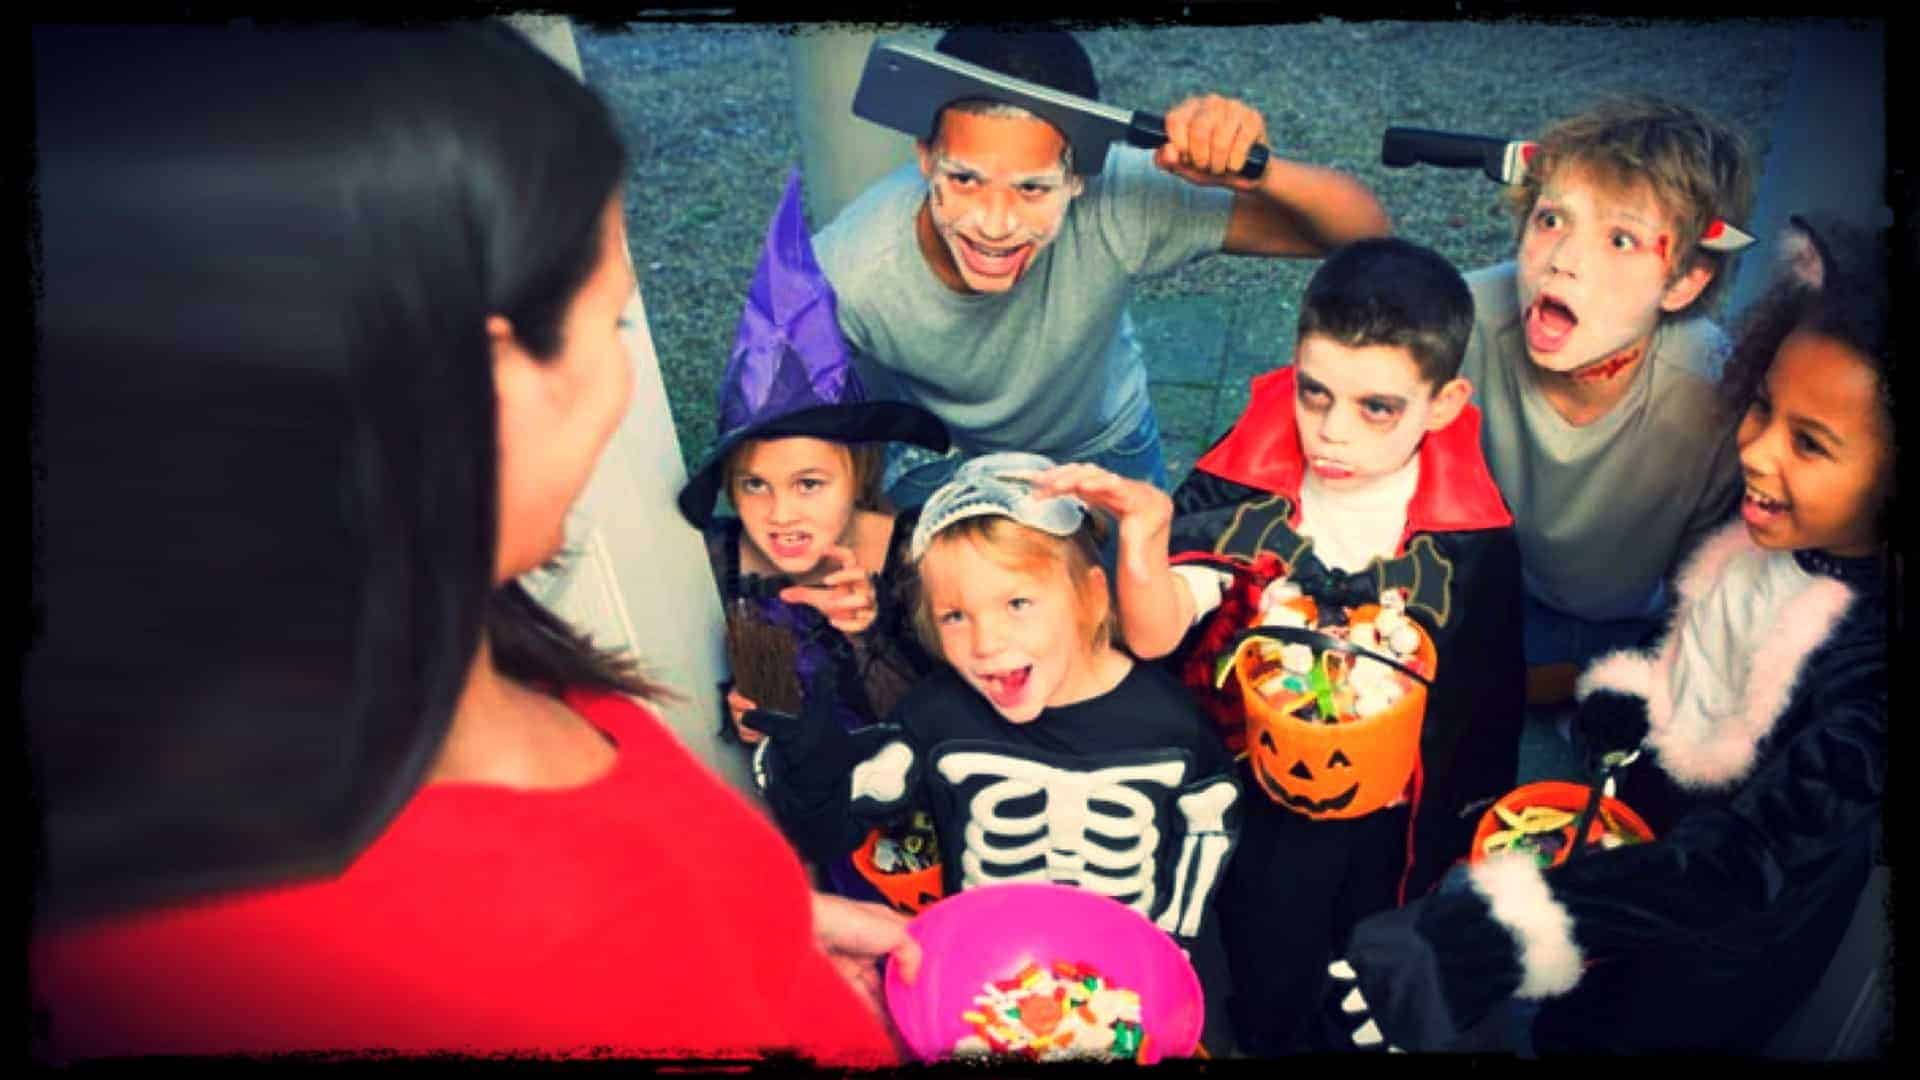 An adult is shown surrounded by children in Halloween costumes. The adult has a bowl of candy in their hand.